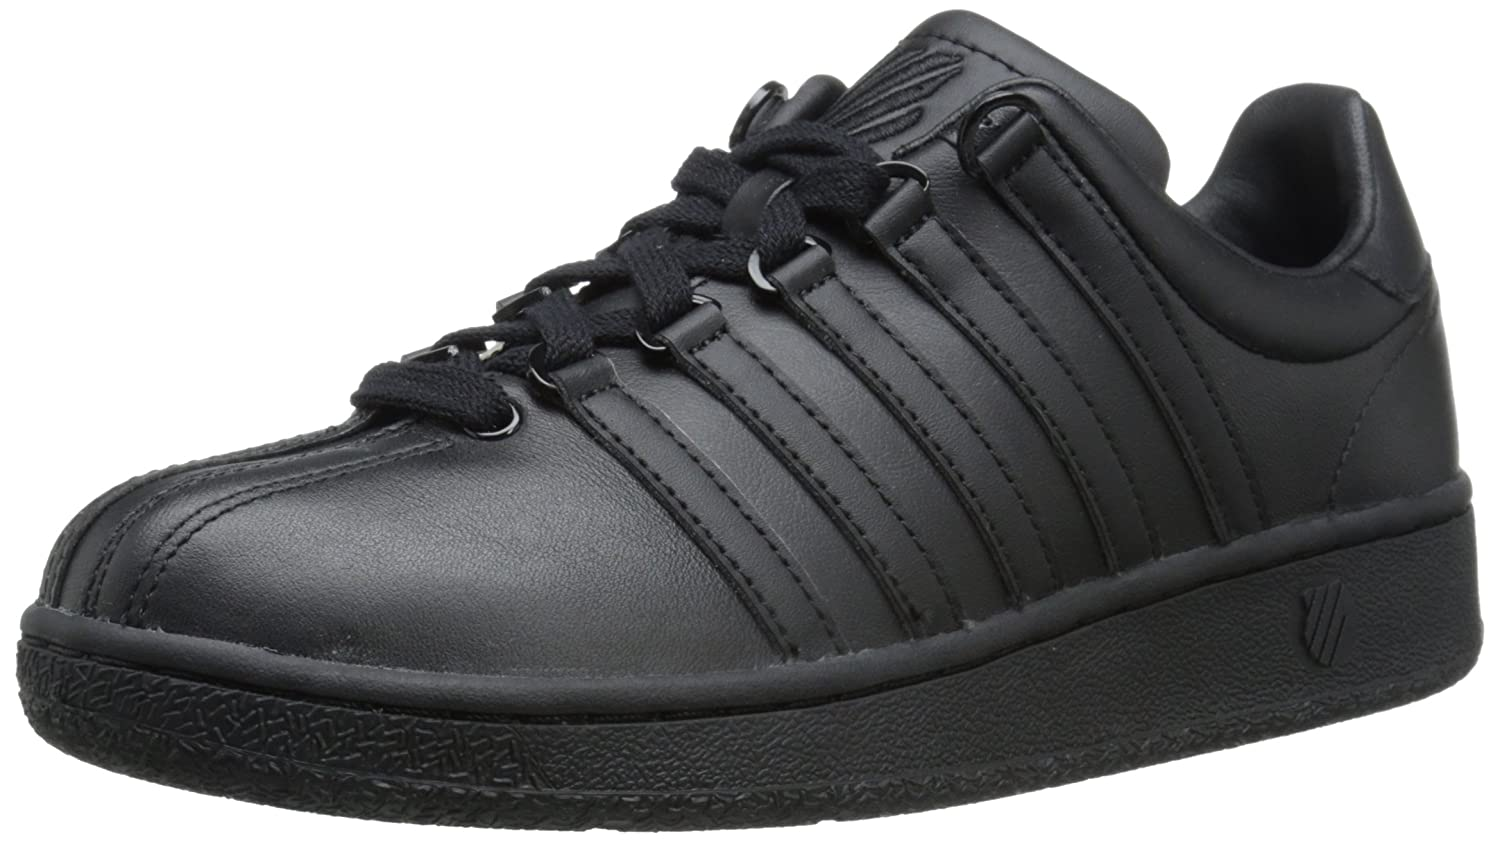 K-Swiss Women's Classic VN Iconic Fashion Sneaker B00RBOGZNY 7 B(M) US|Black/Black